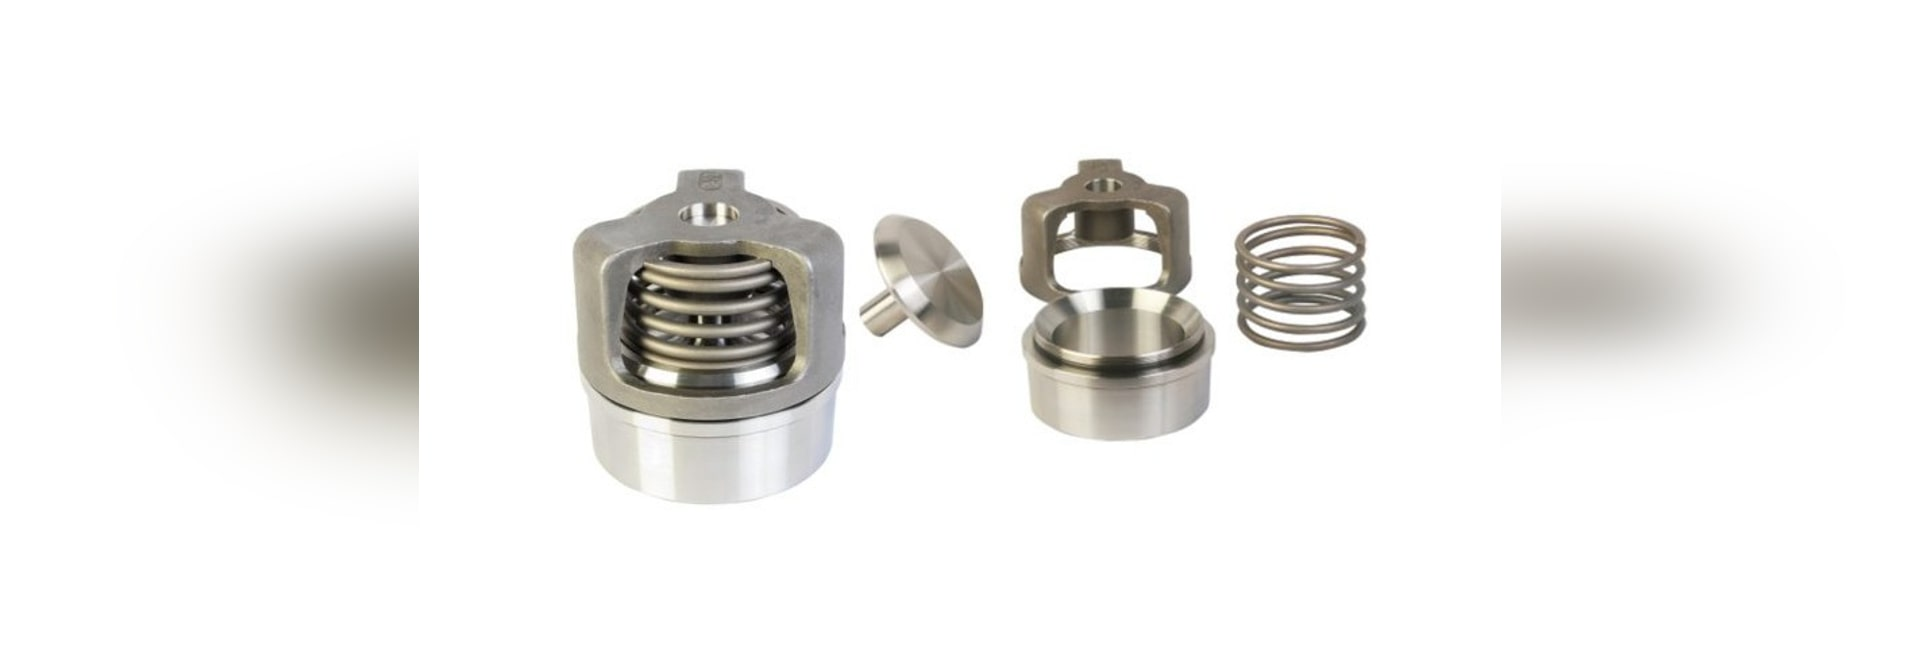 Spherical Valves for a Wide Variety of Pumps